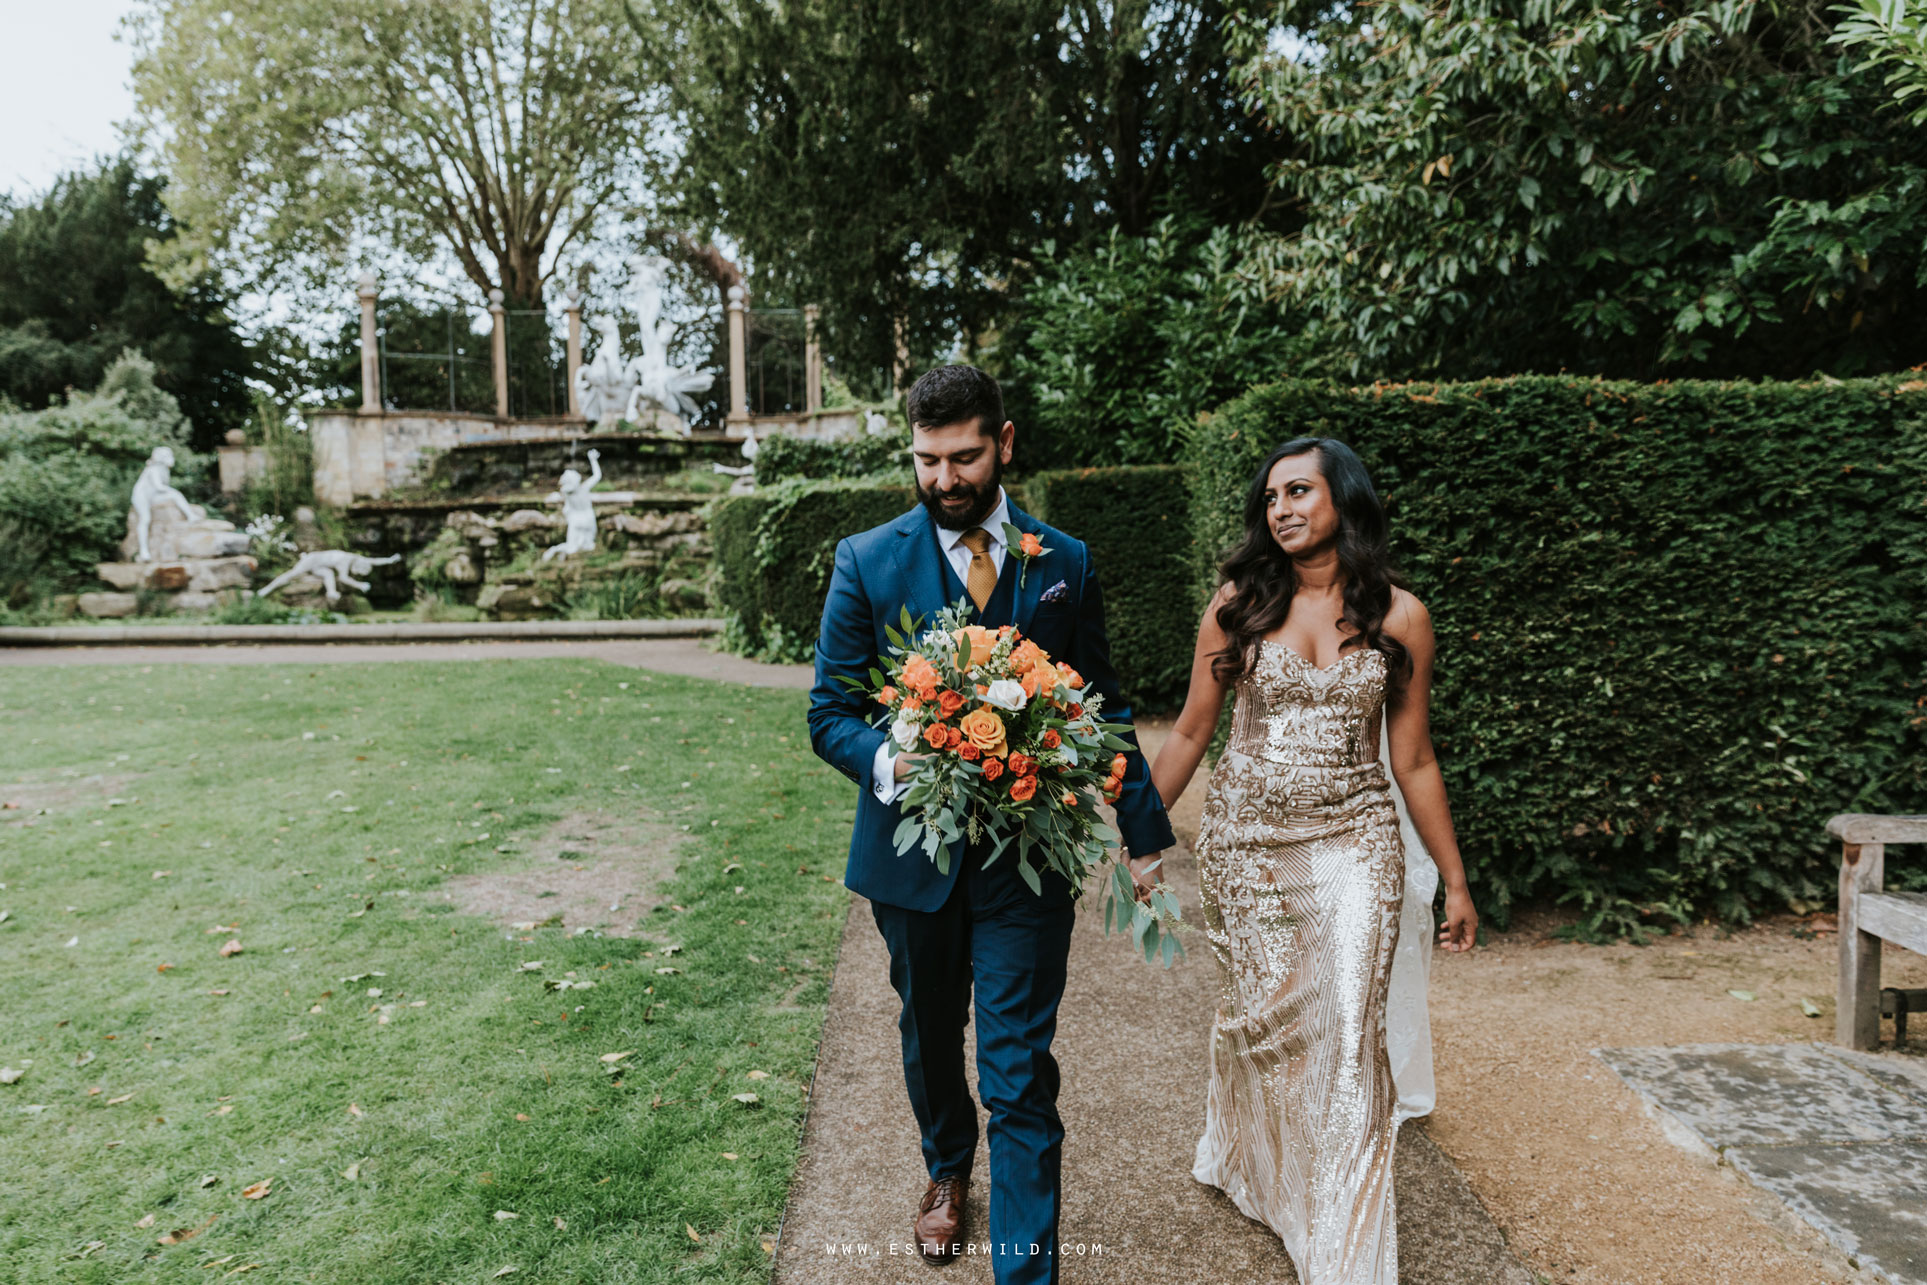 Twickenham_Registry_Office_London_Wedding_Ceremony_Esther_Wild_Photographer_IMG_0882.jpg